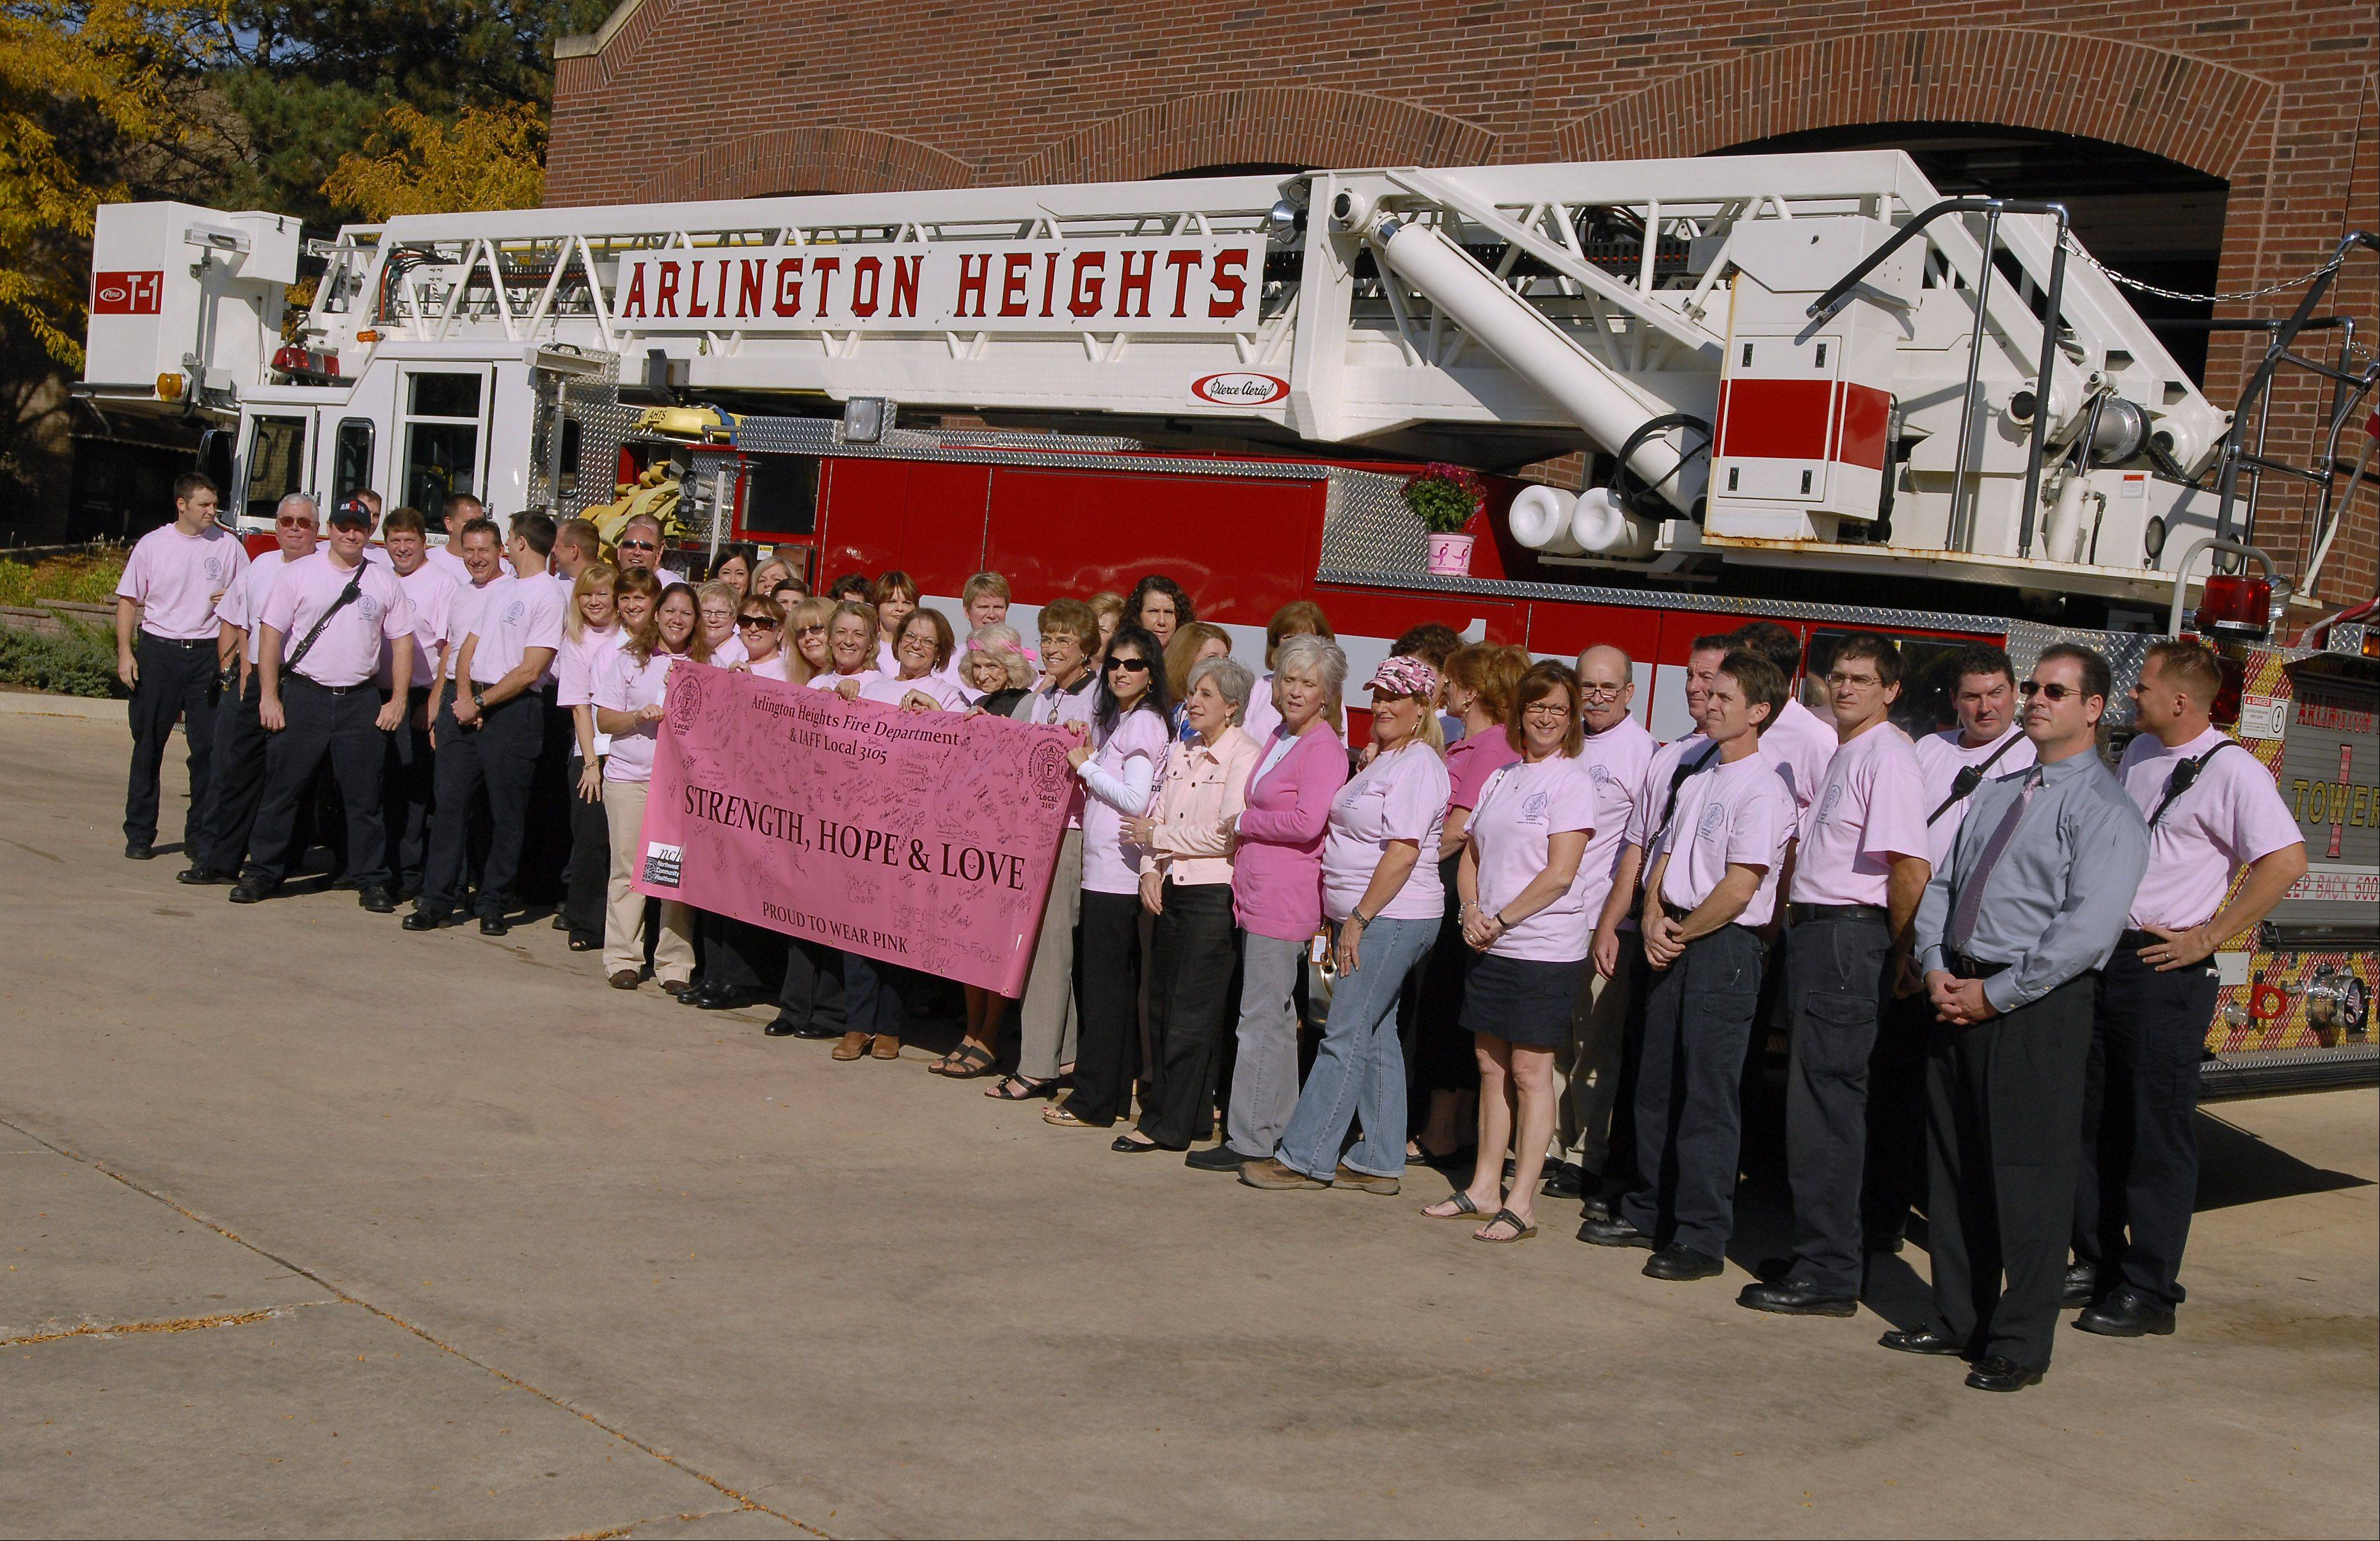 Village of Arlington Heights employees and firefighters stand in support of the Arlington Heights Fire Department Cancer Fund.